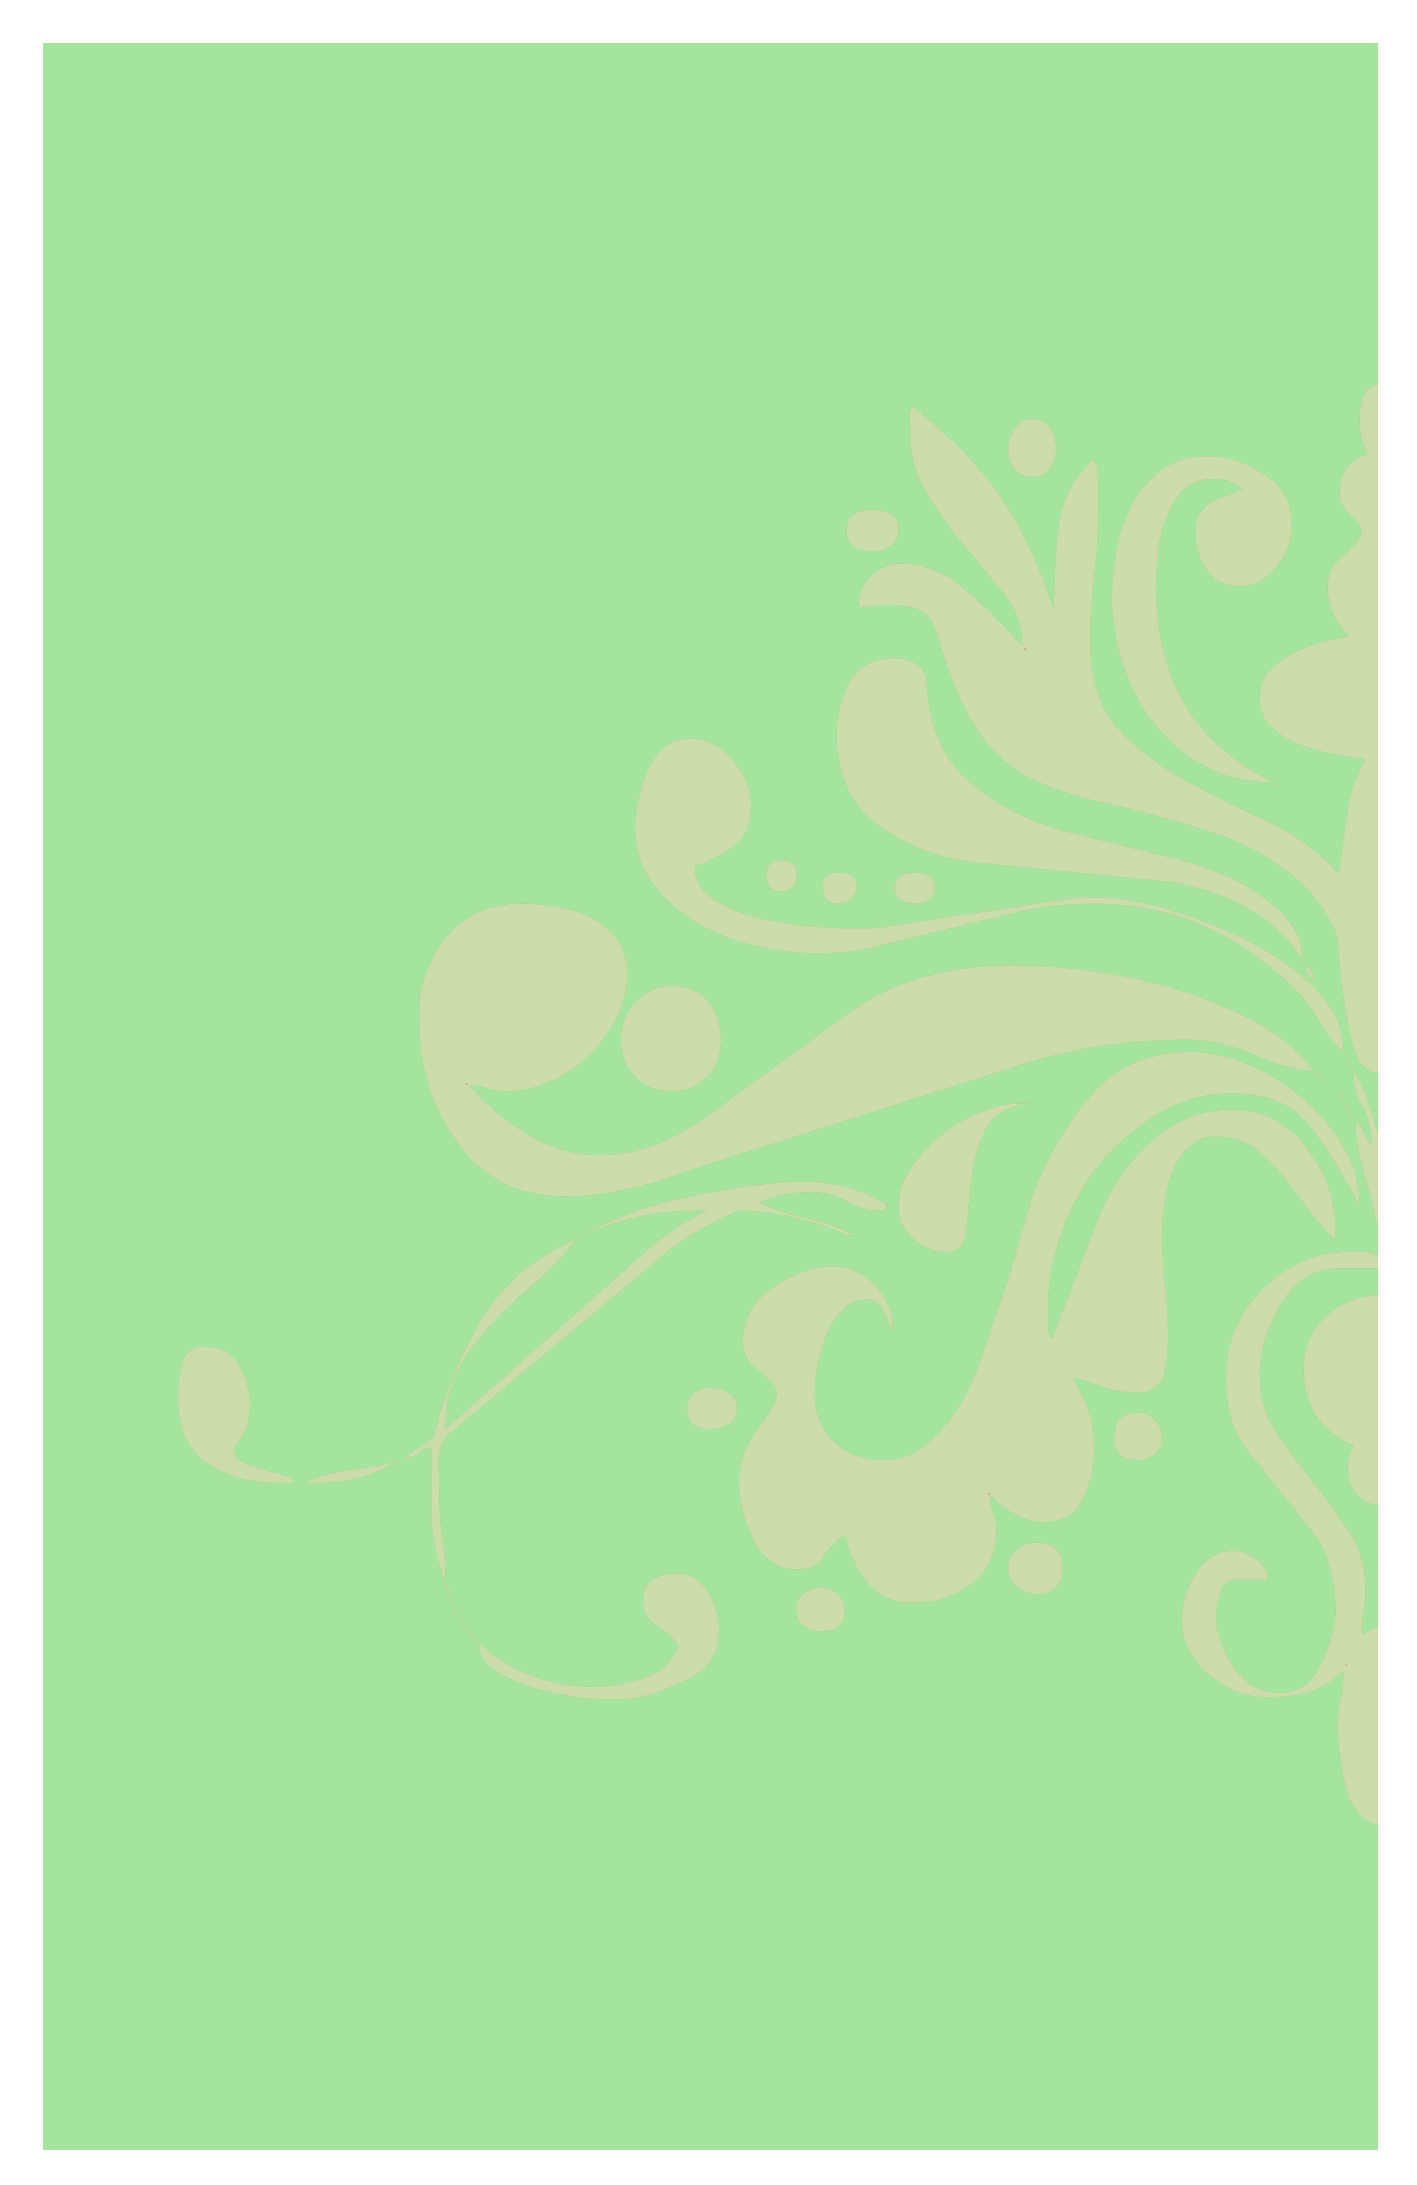 loose leaf paper template – Loose Leaf Paper Template